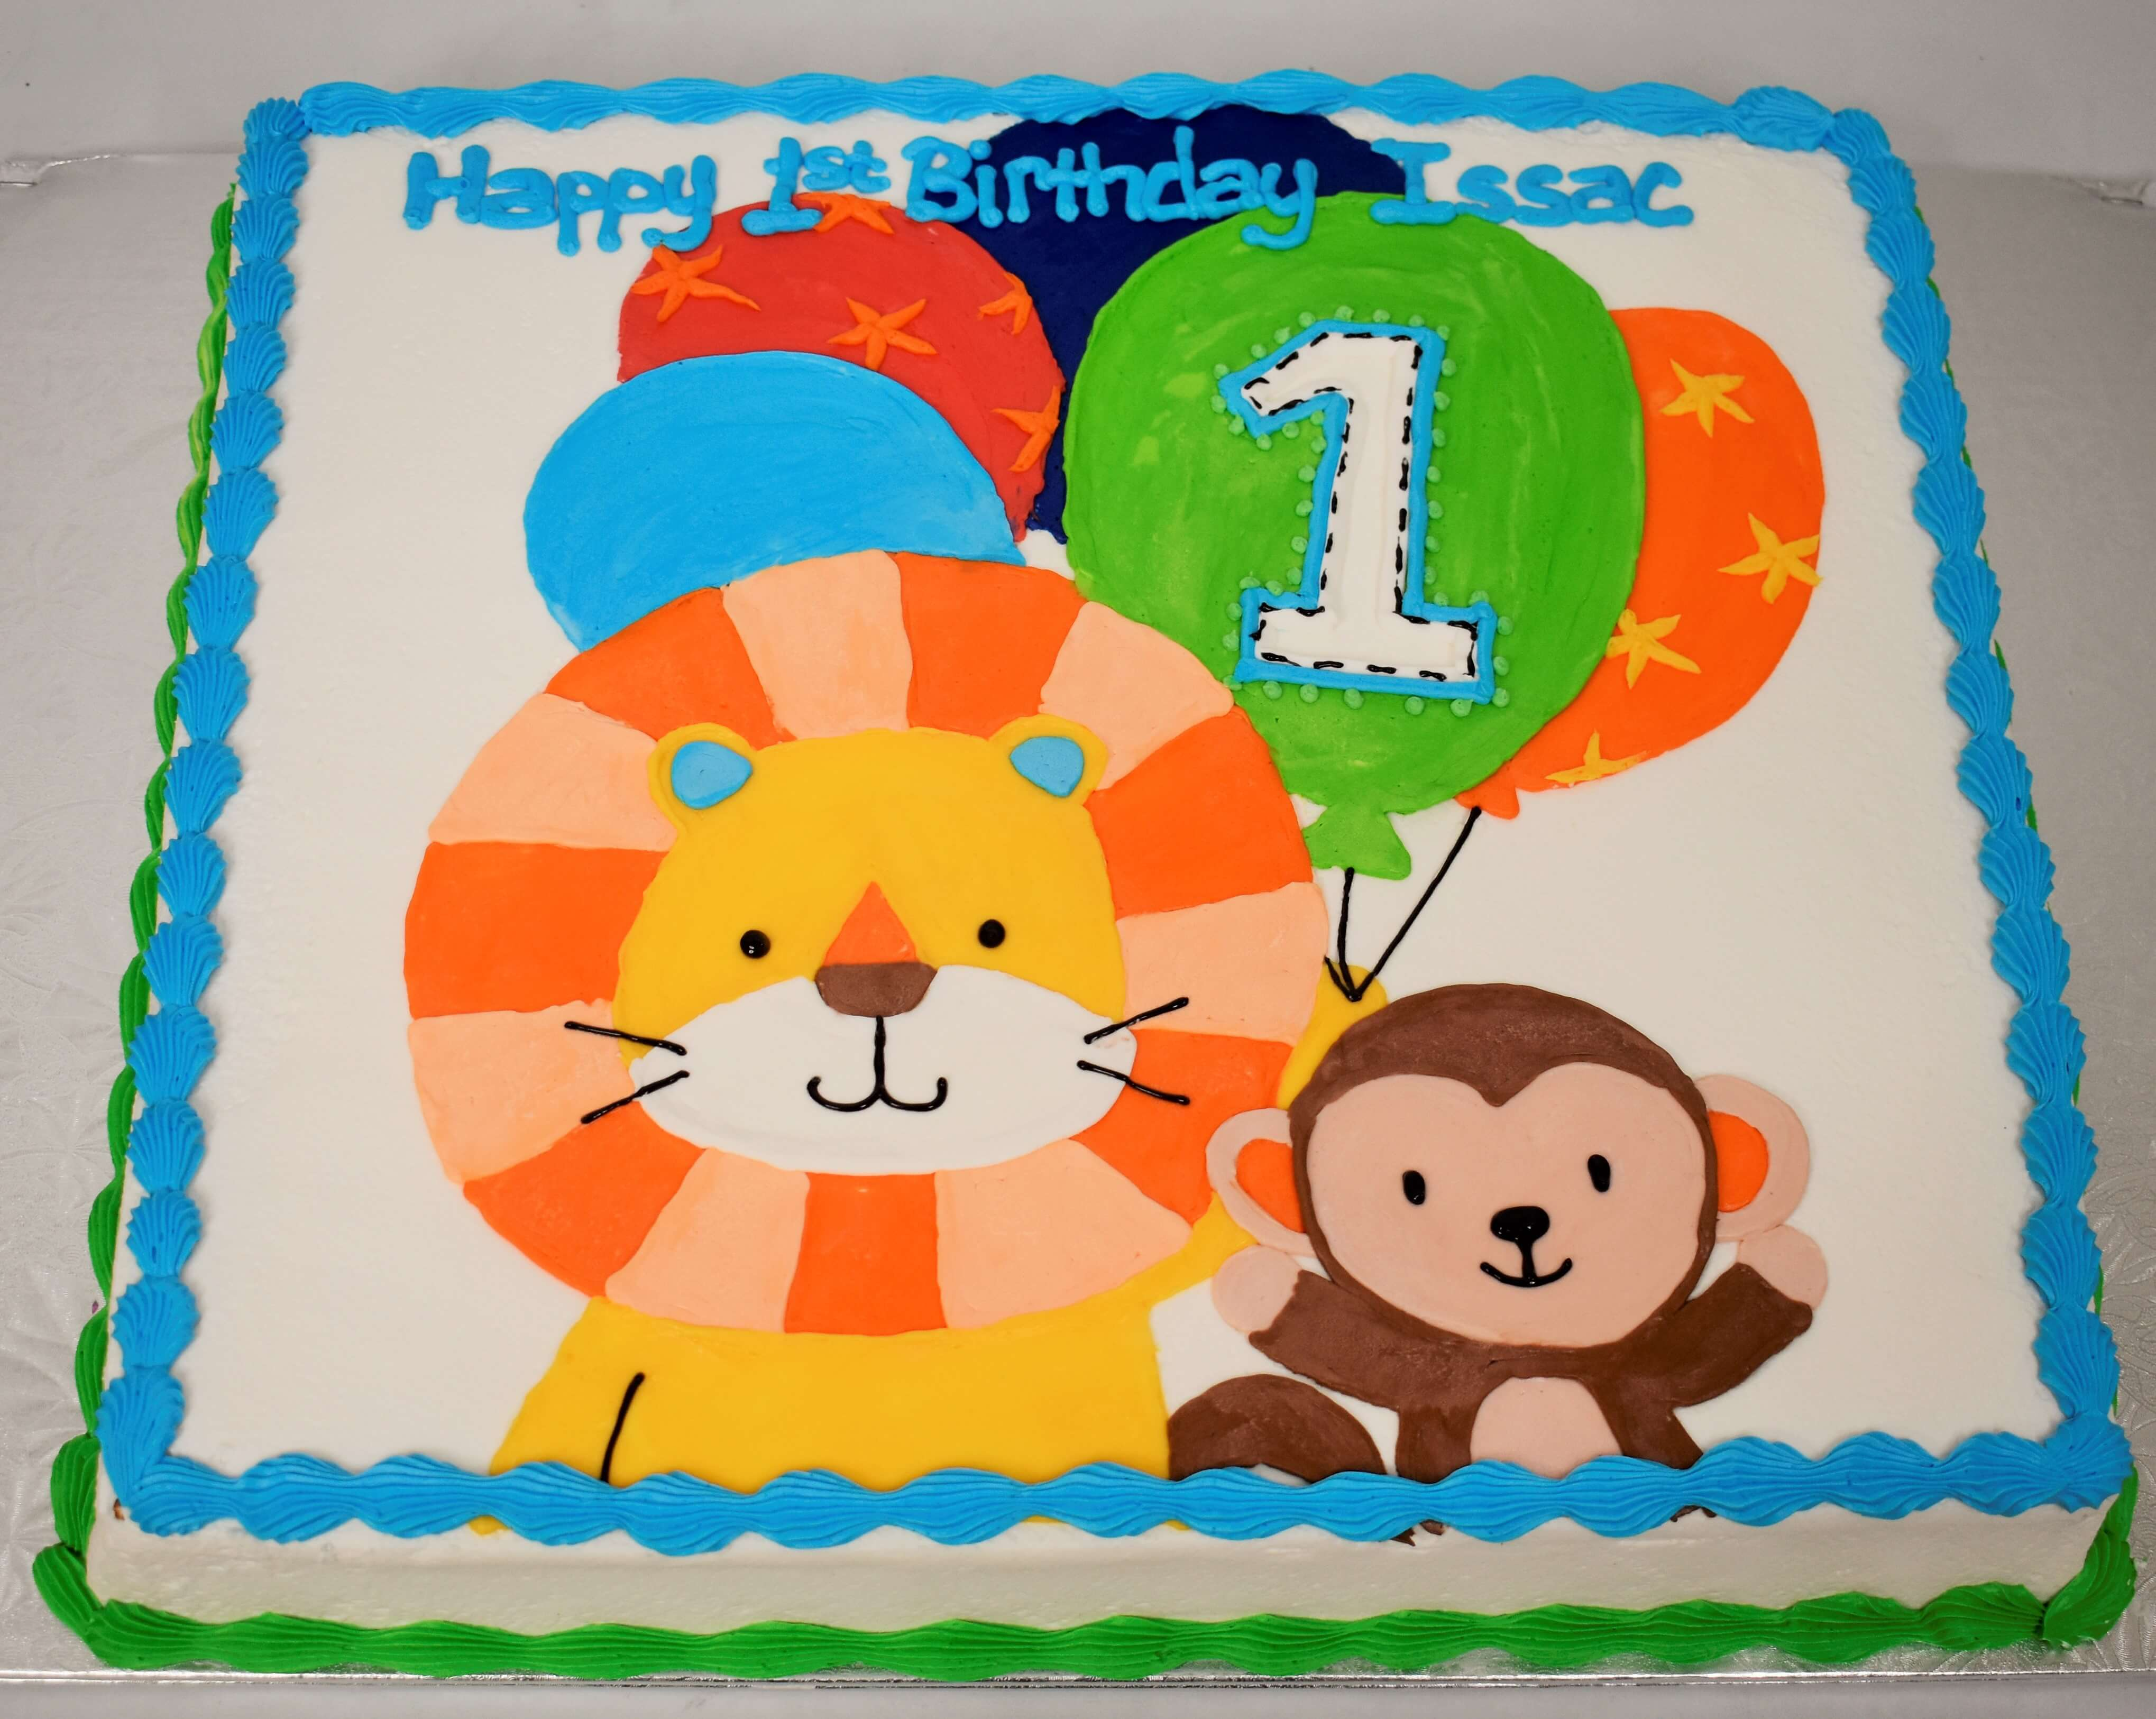 McArthur's Bakery Custom Cake with Monkey, Lion, Balloons.